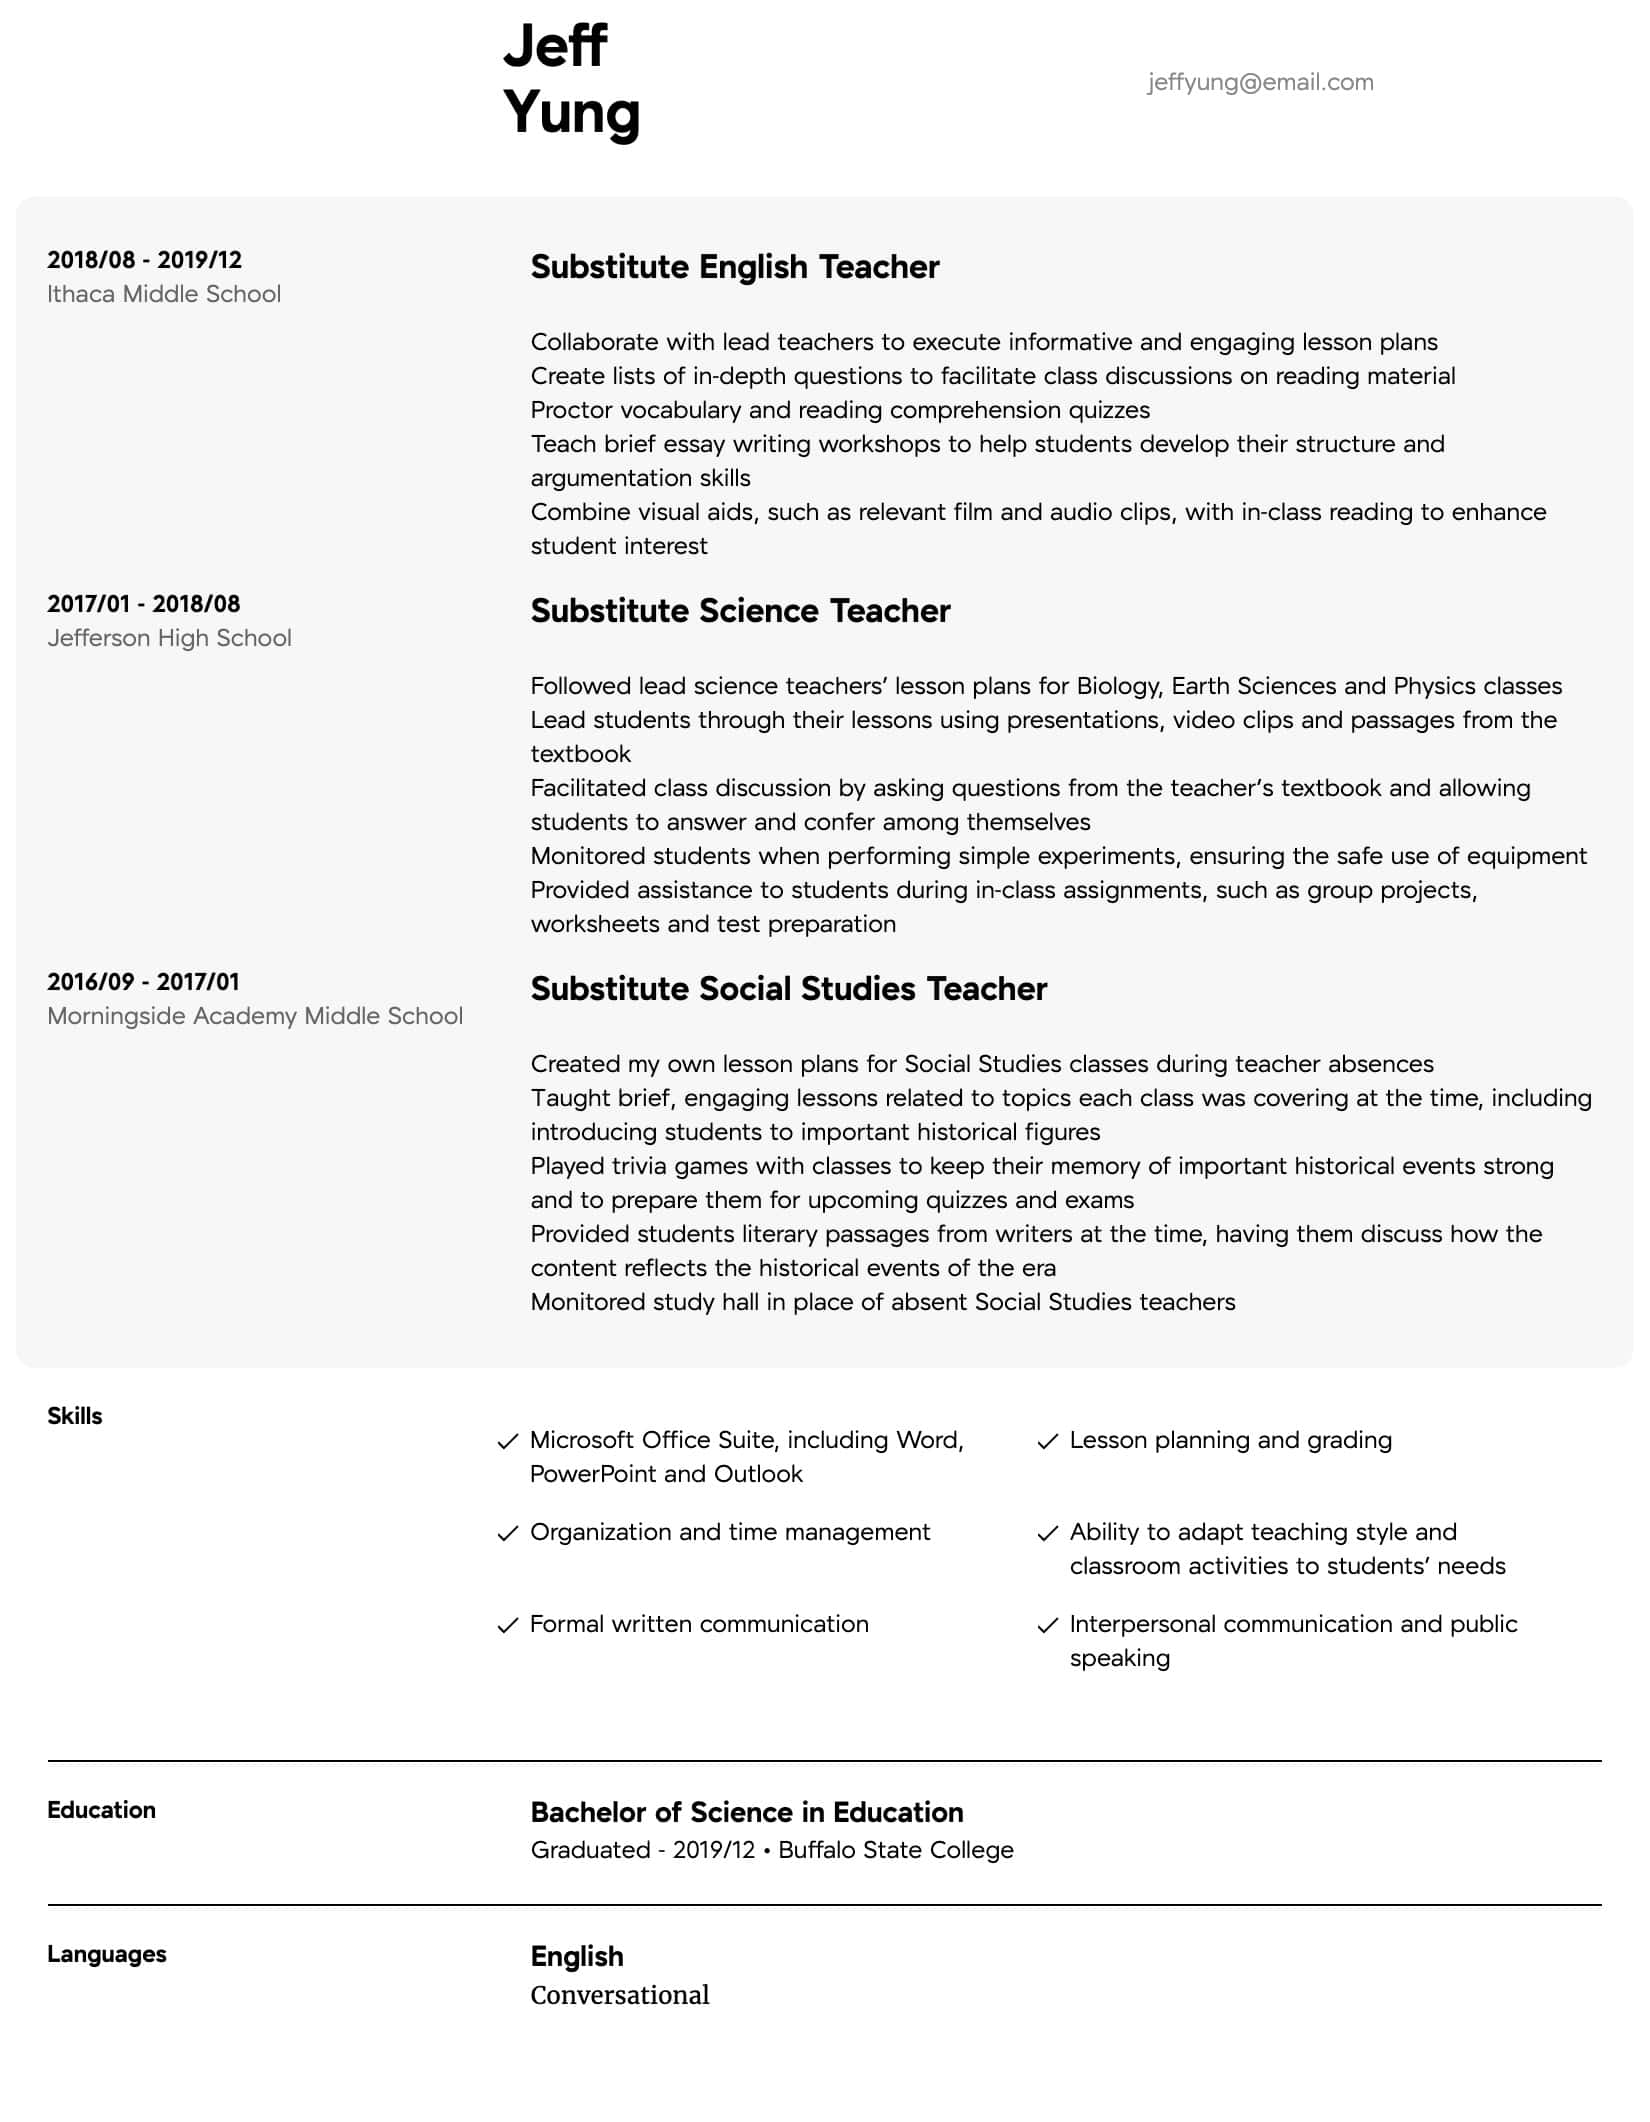 substitute teacher resume samples all experience levels entry level intermediate normal Resume Entry Level Teacher Resume